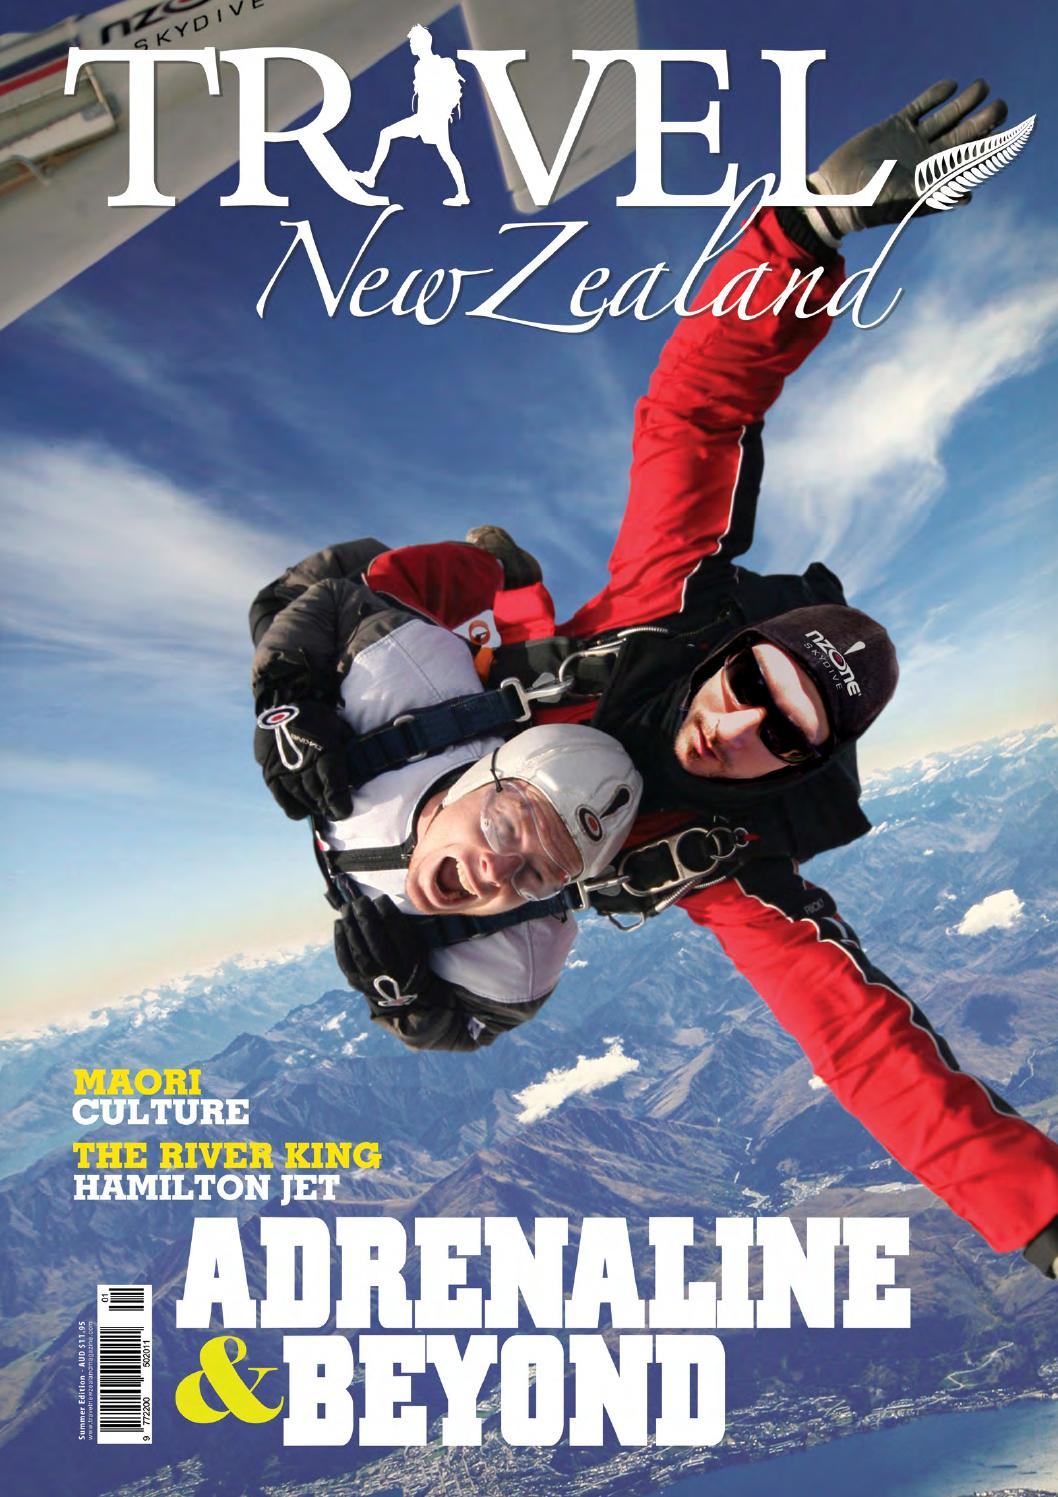 Travel New Zealand Summer 2012 by Waterford Press Limited - issuu